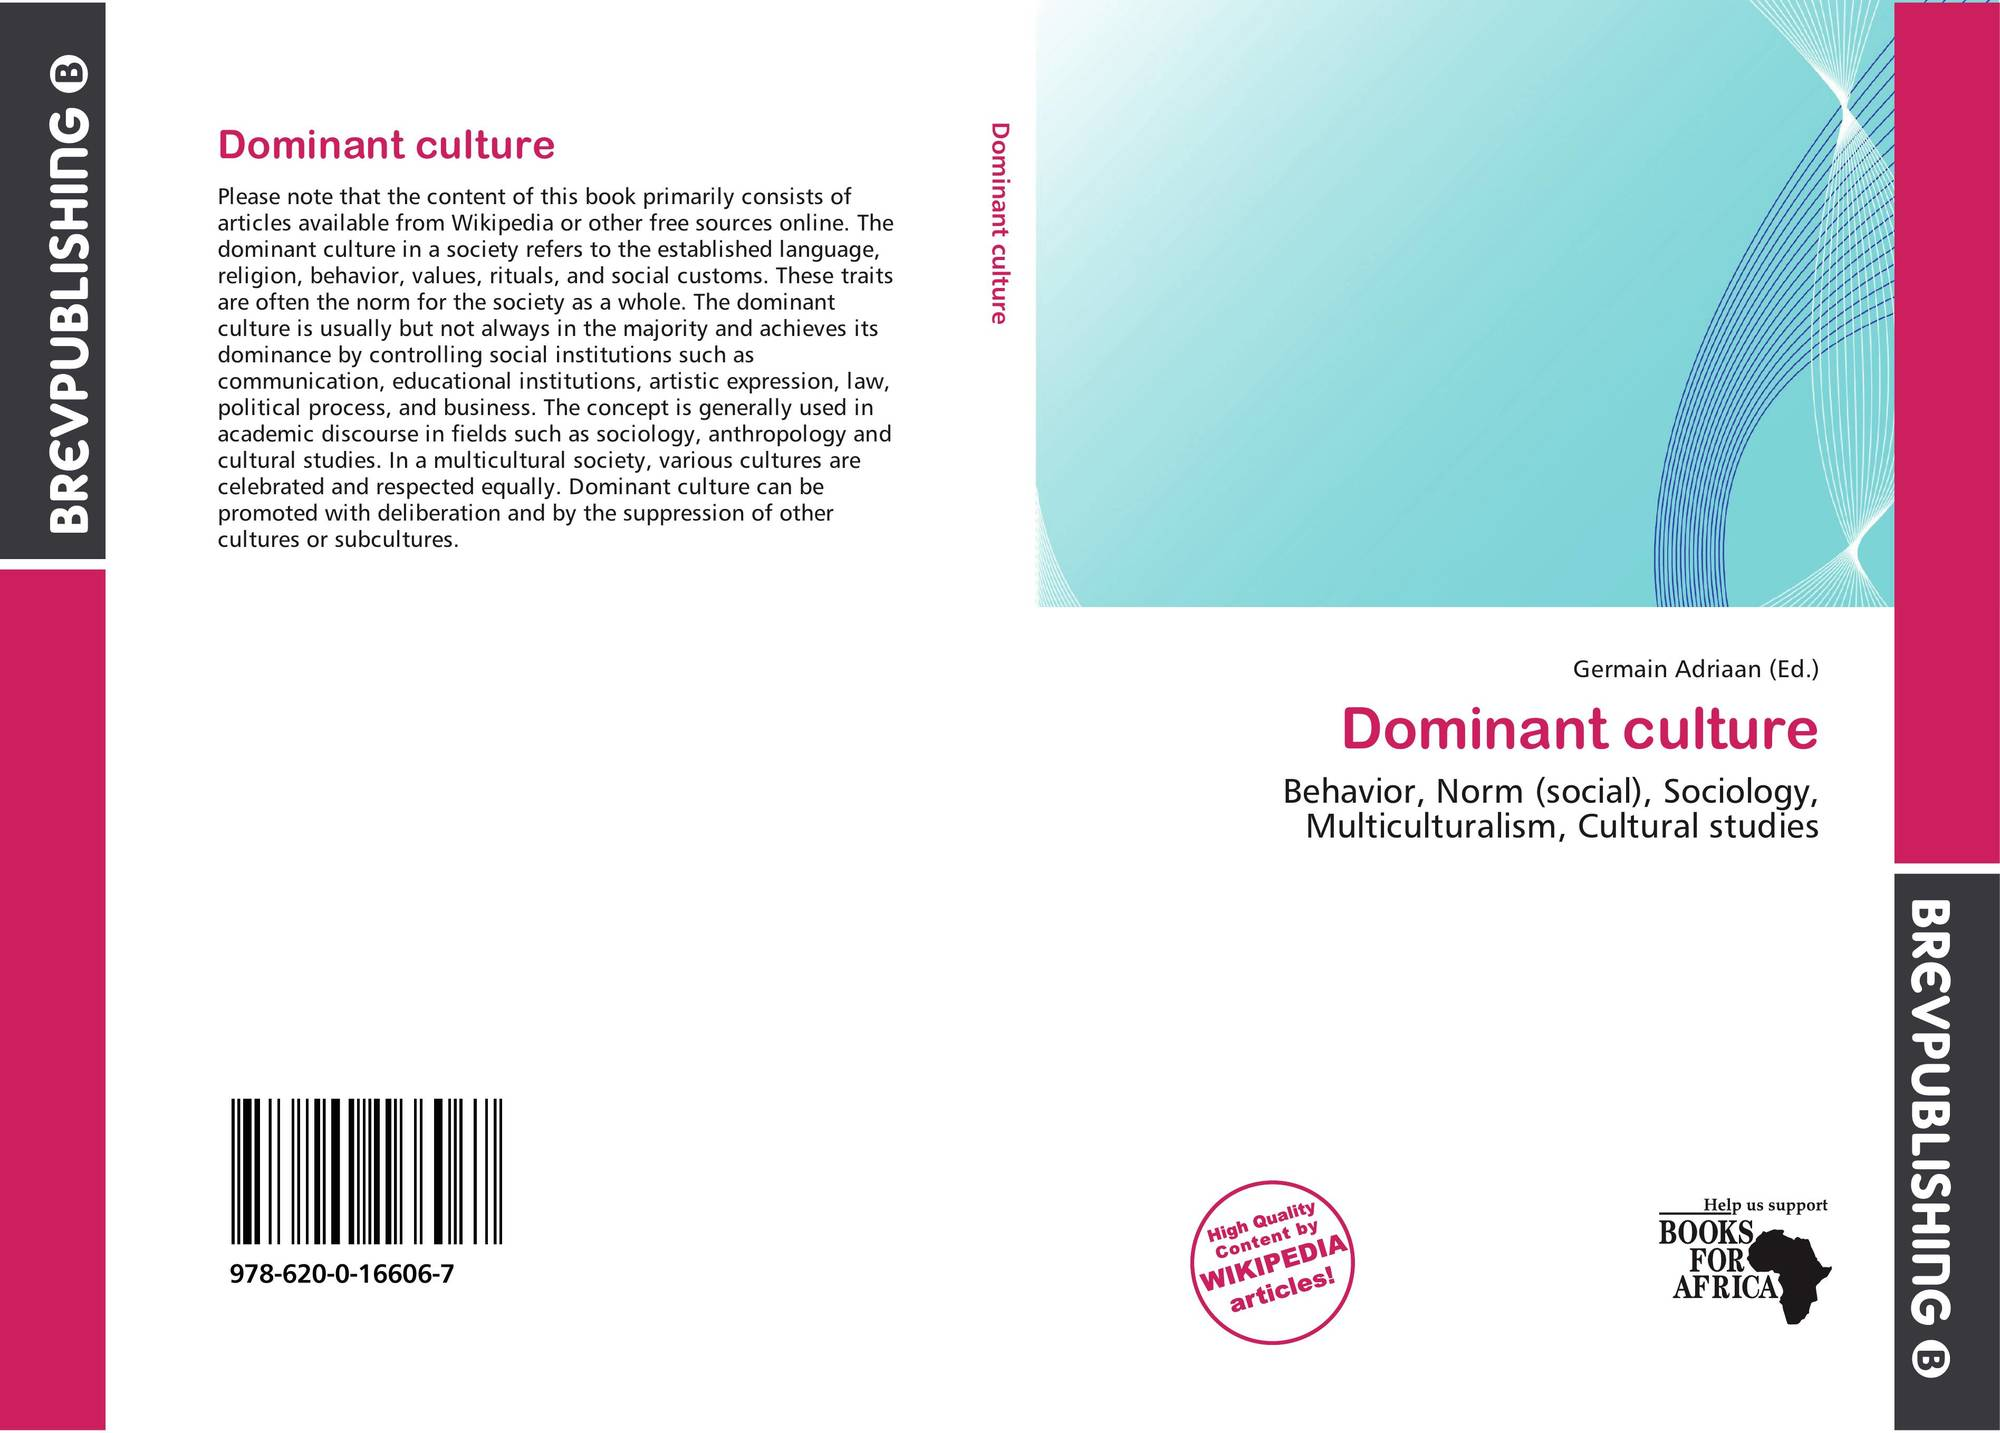 dominant culture The idea of a dominant culture is elusive and uncomfortable, so most people don't think or talk about it except in brief references or symbols.